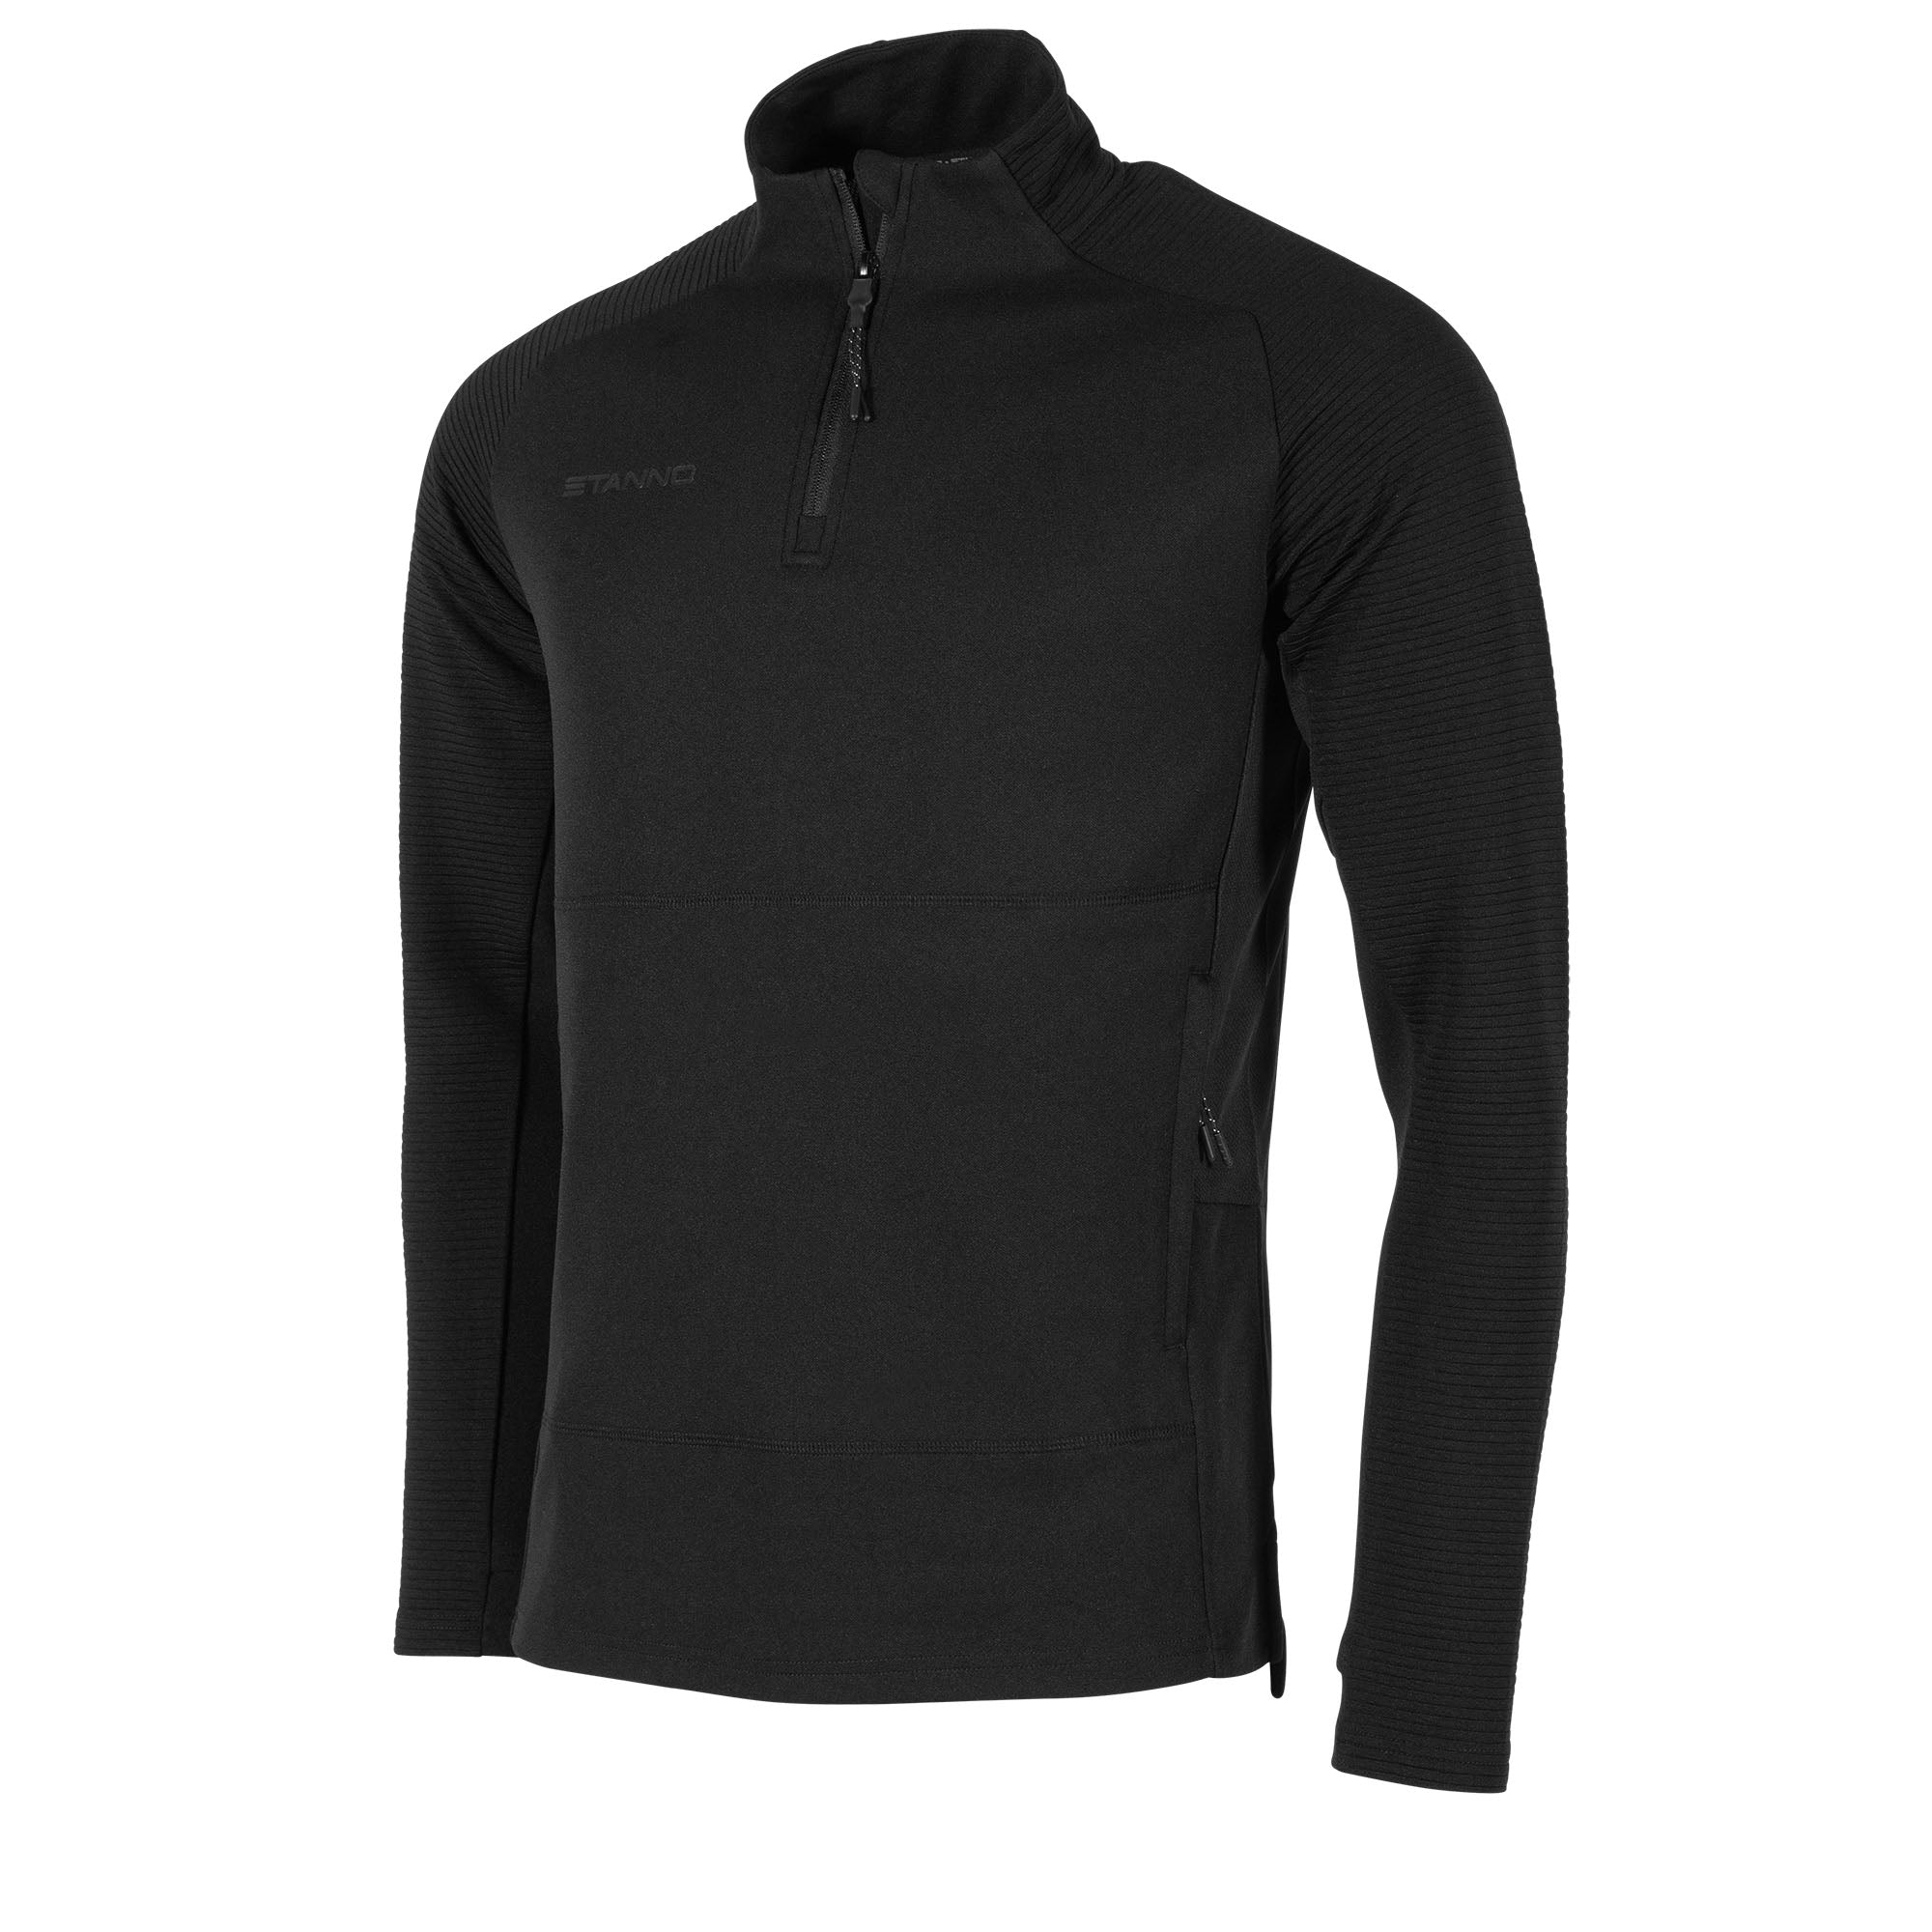 Front view of black Stanno Functionals 1/4 zip top with black ribbed sleeves. Subtle Stanno text logo on right chest.